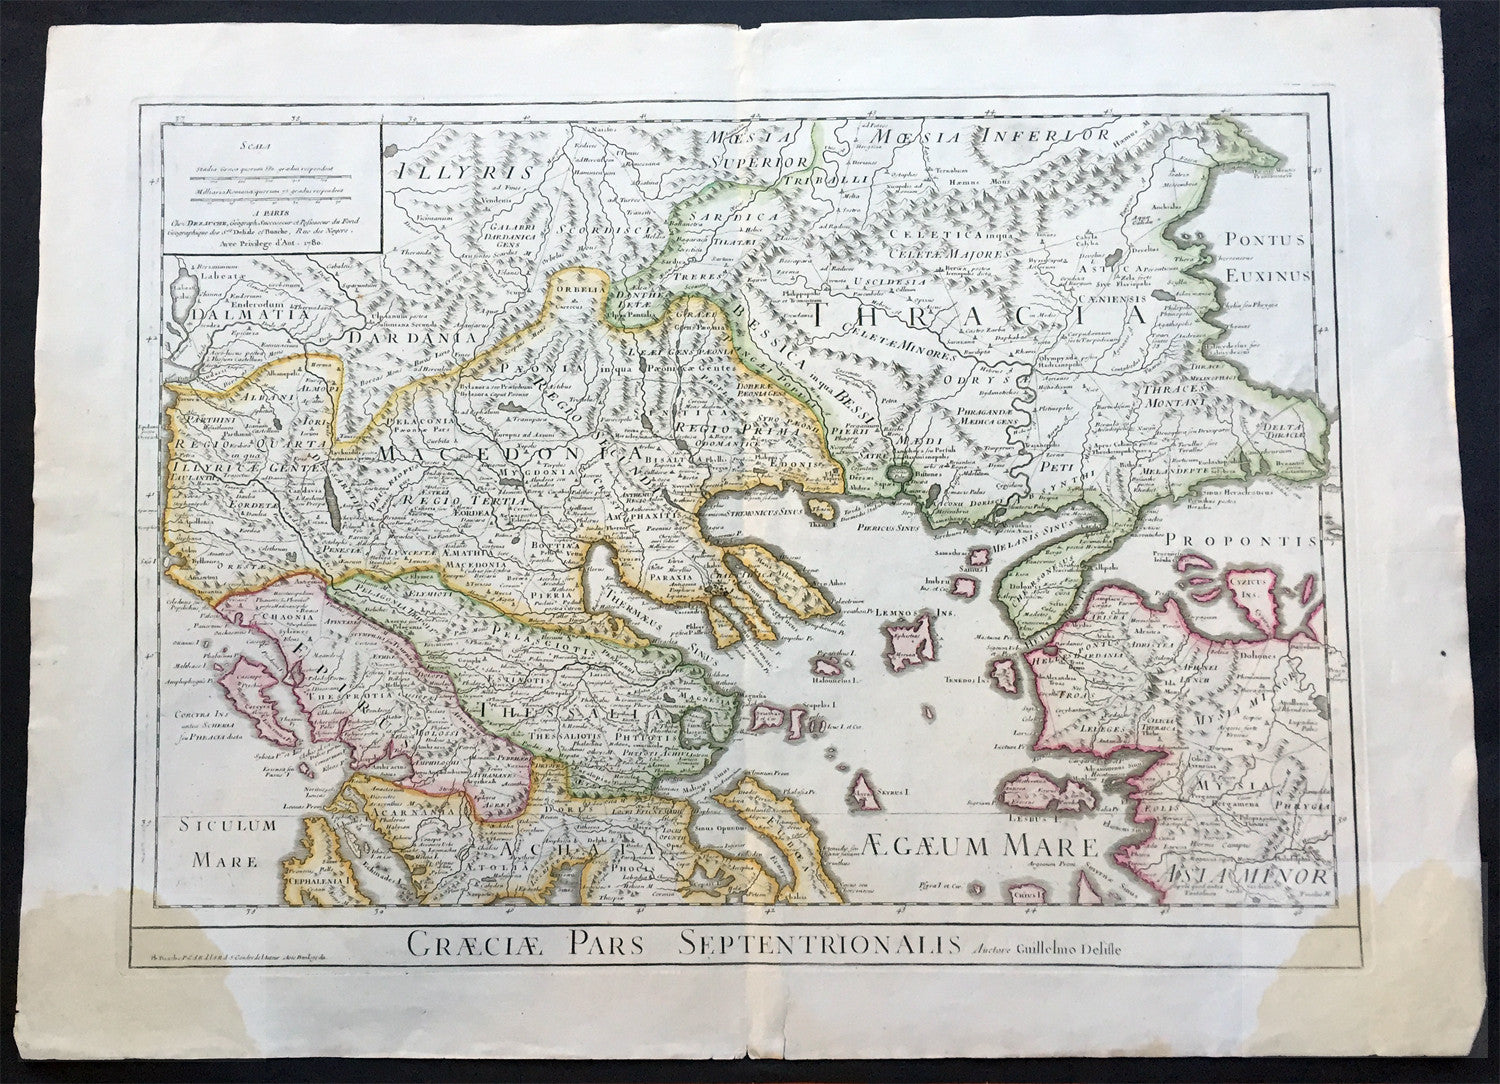 1780 large delisle antique map of nothern greece macedonia 1780 large delisle antique map of nothern greece macedonia thracia turkey gumiabroncs Gallery